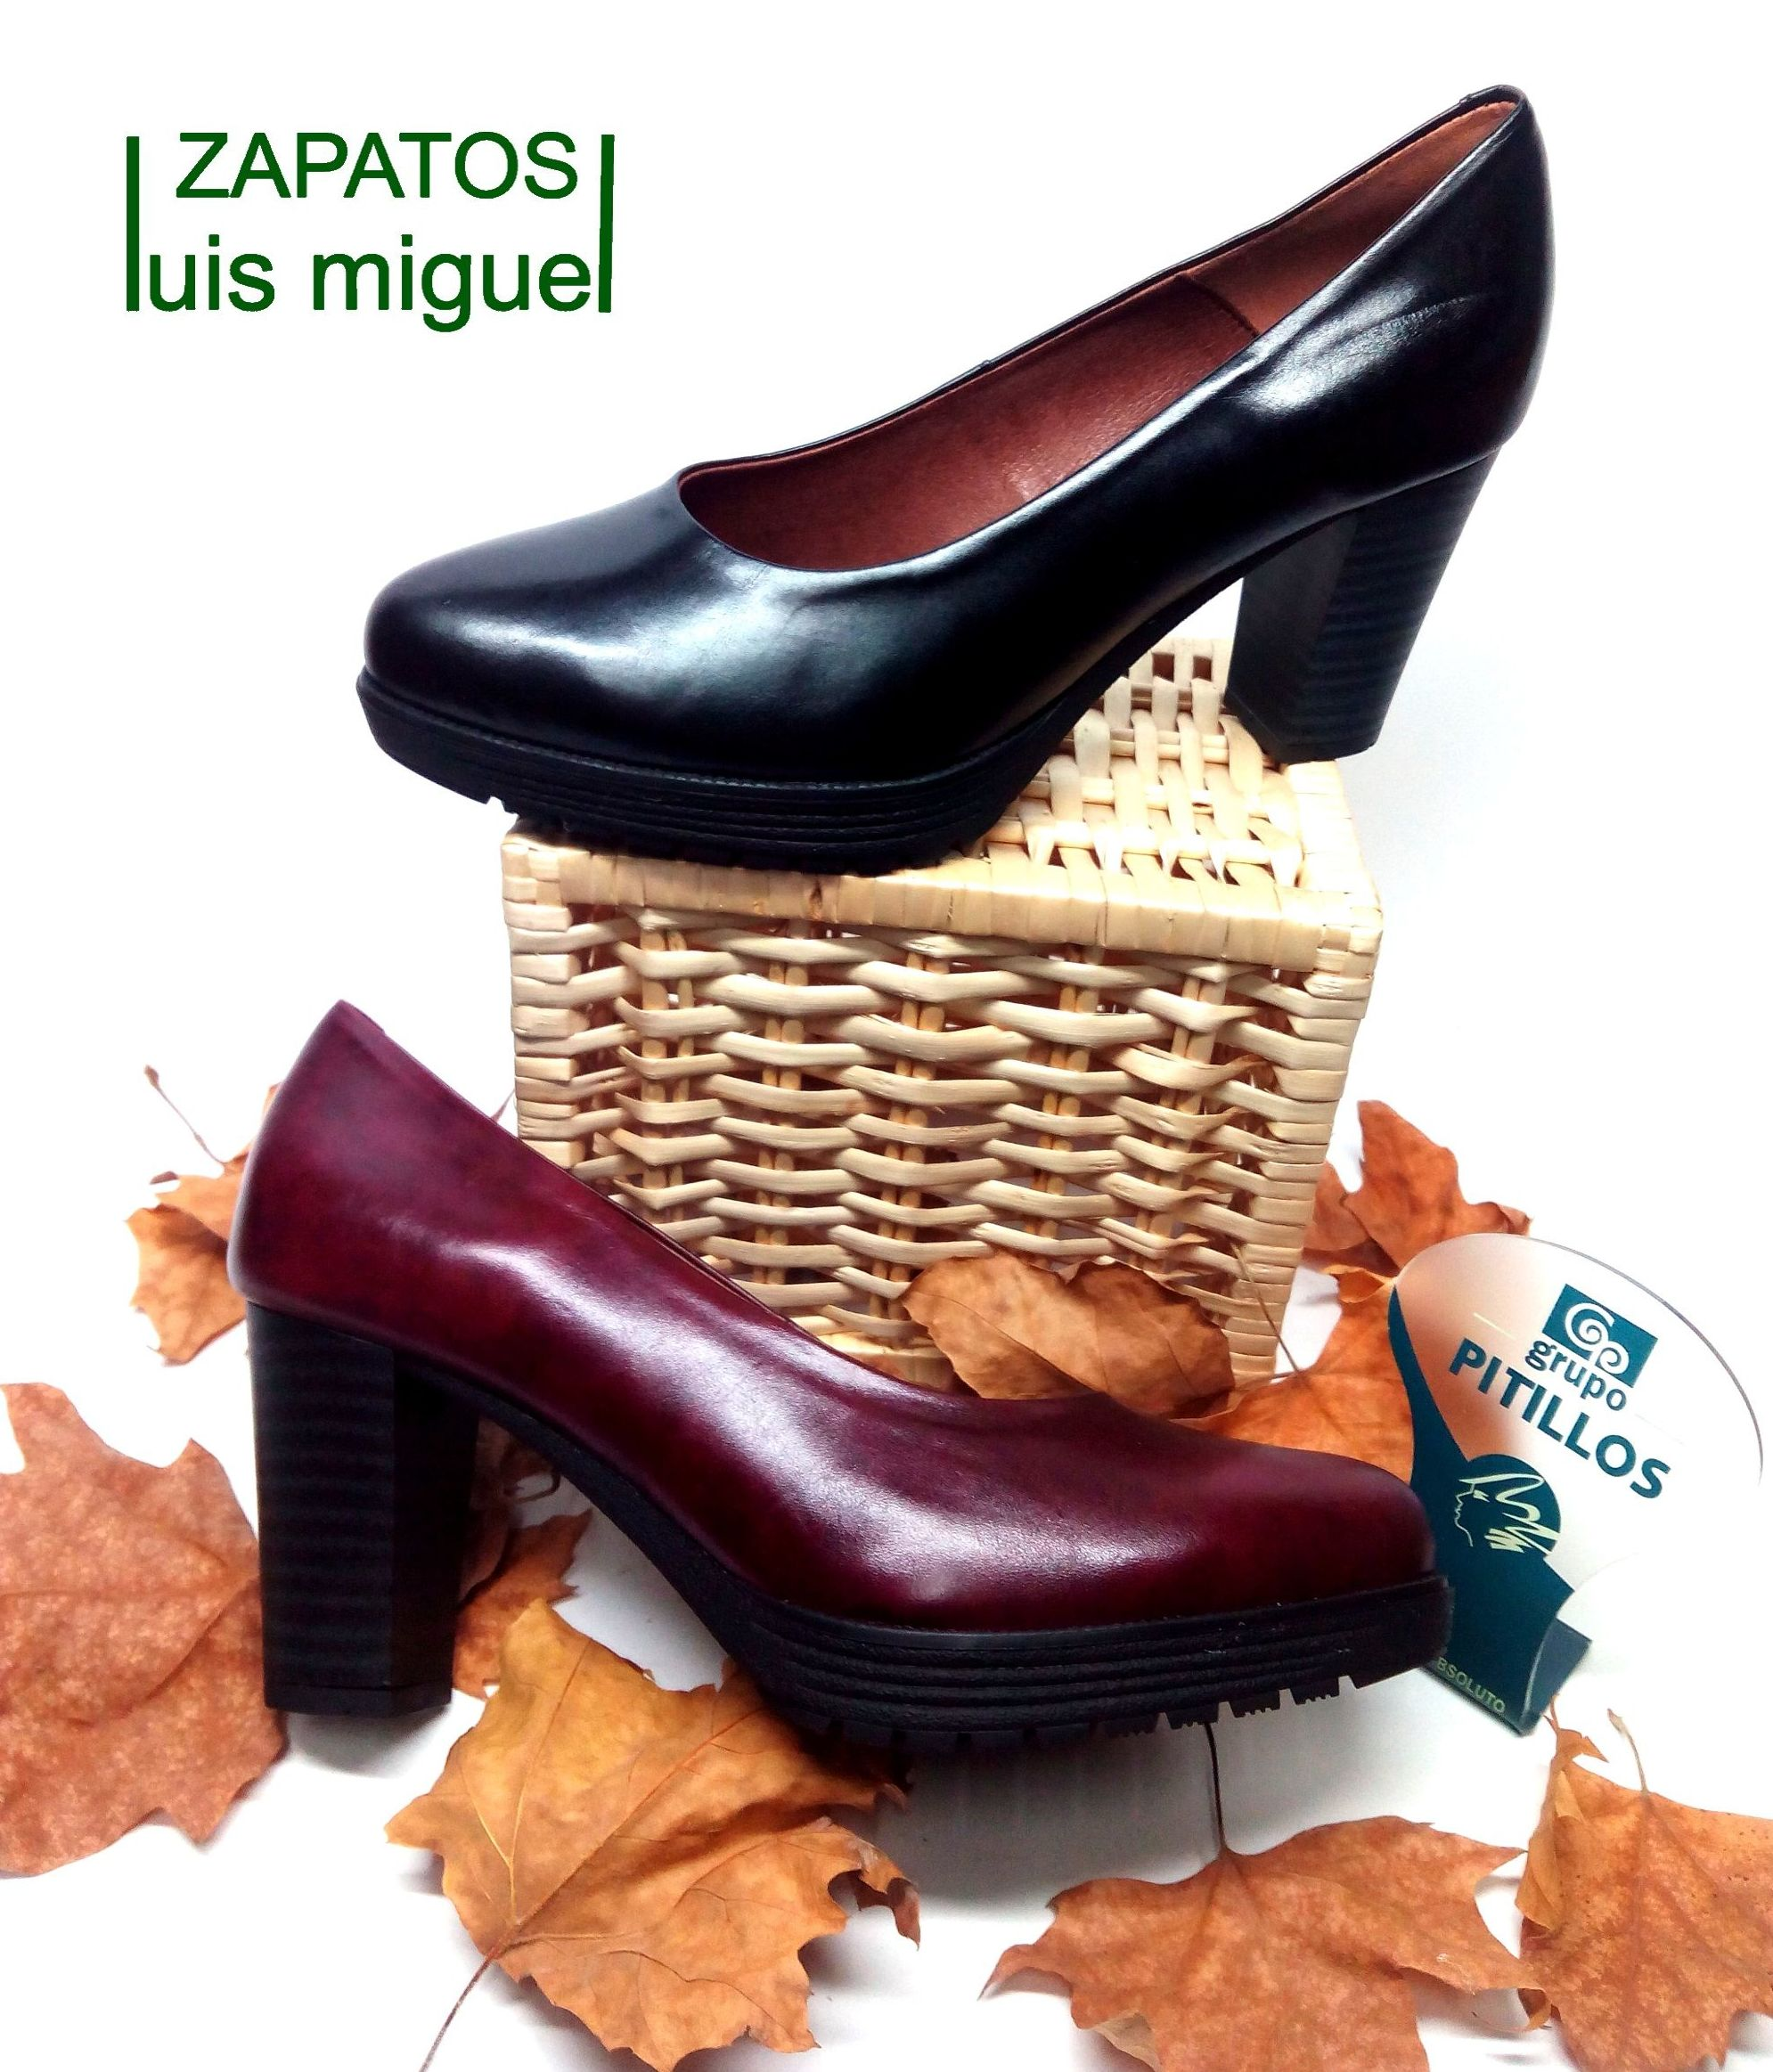 zapatos salon de tacon alto: Catalogo de productos de Zapatos Luis Miguel